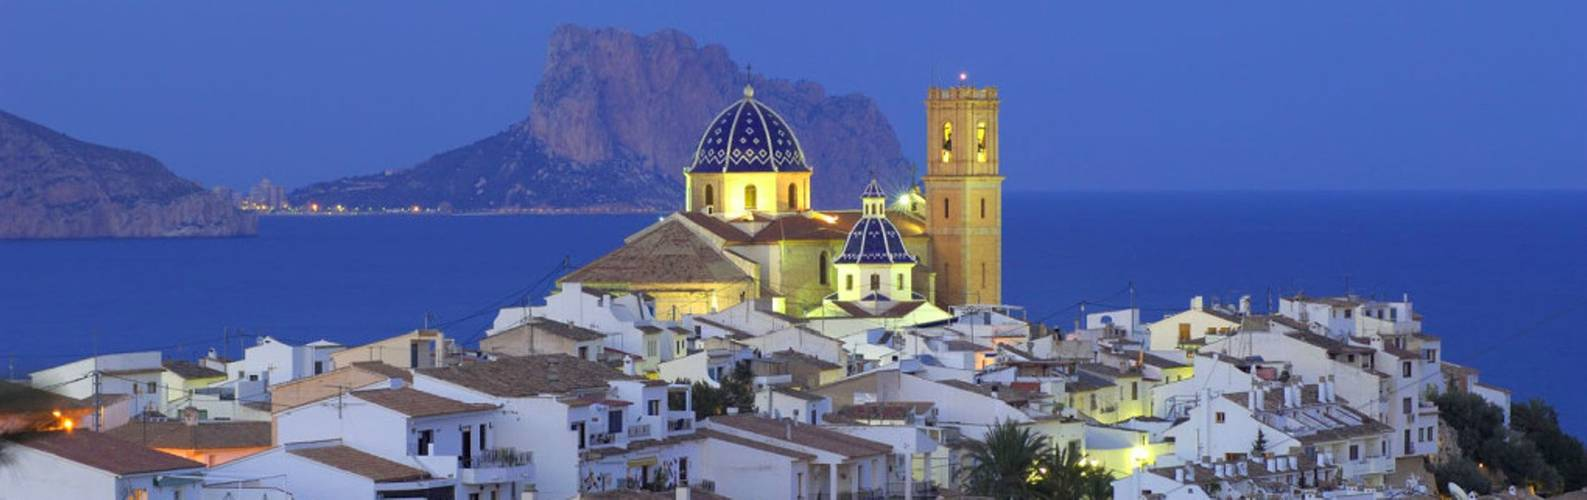 None Hotell Cap Negret Altea, Alicante